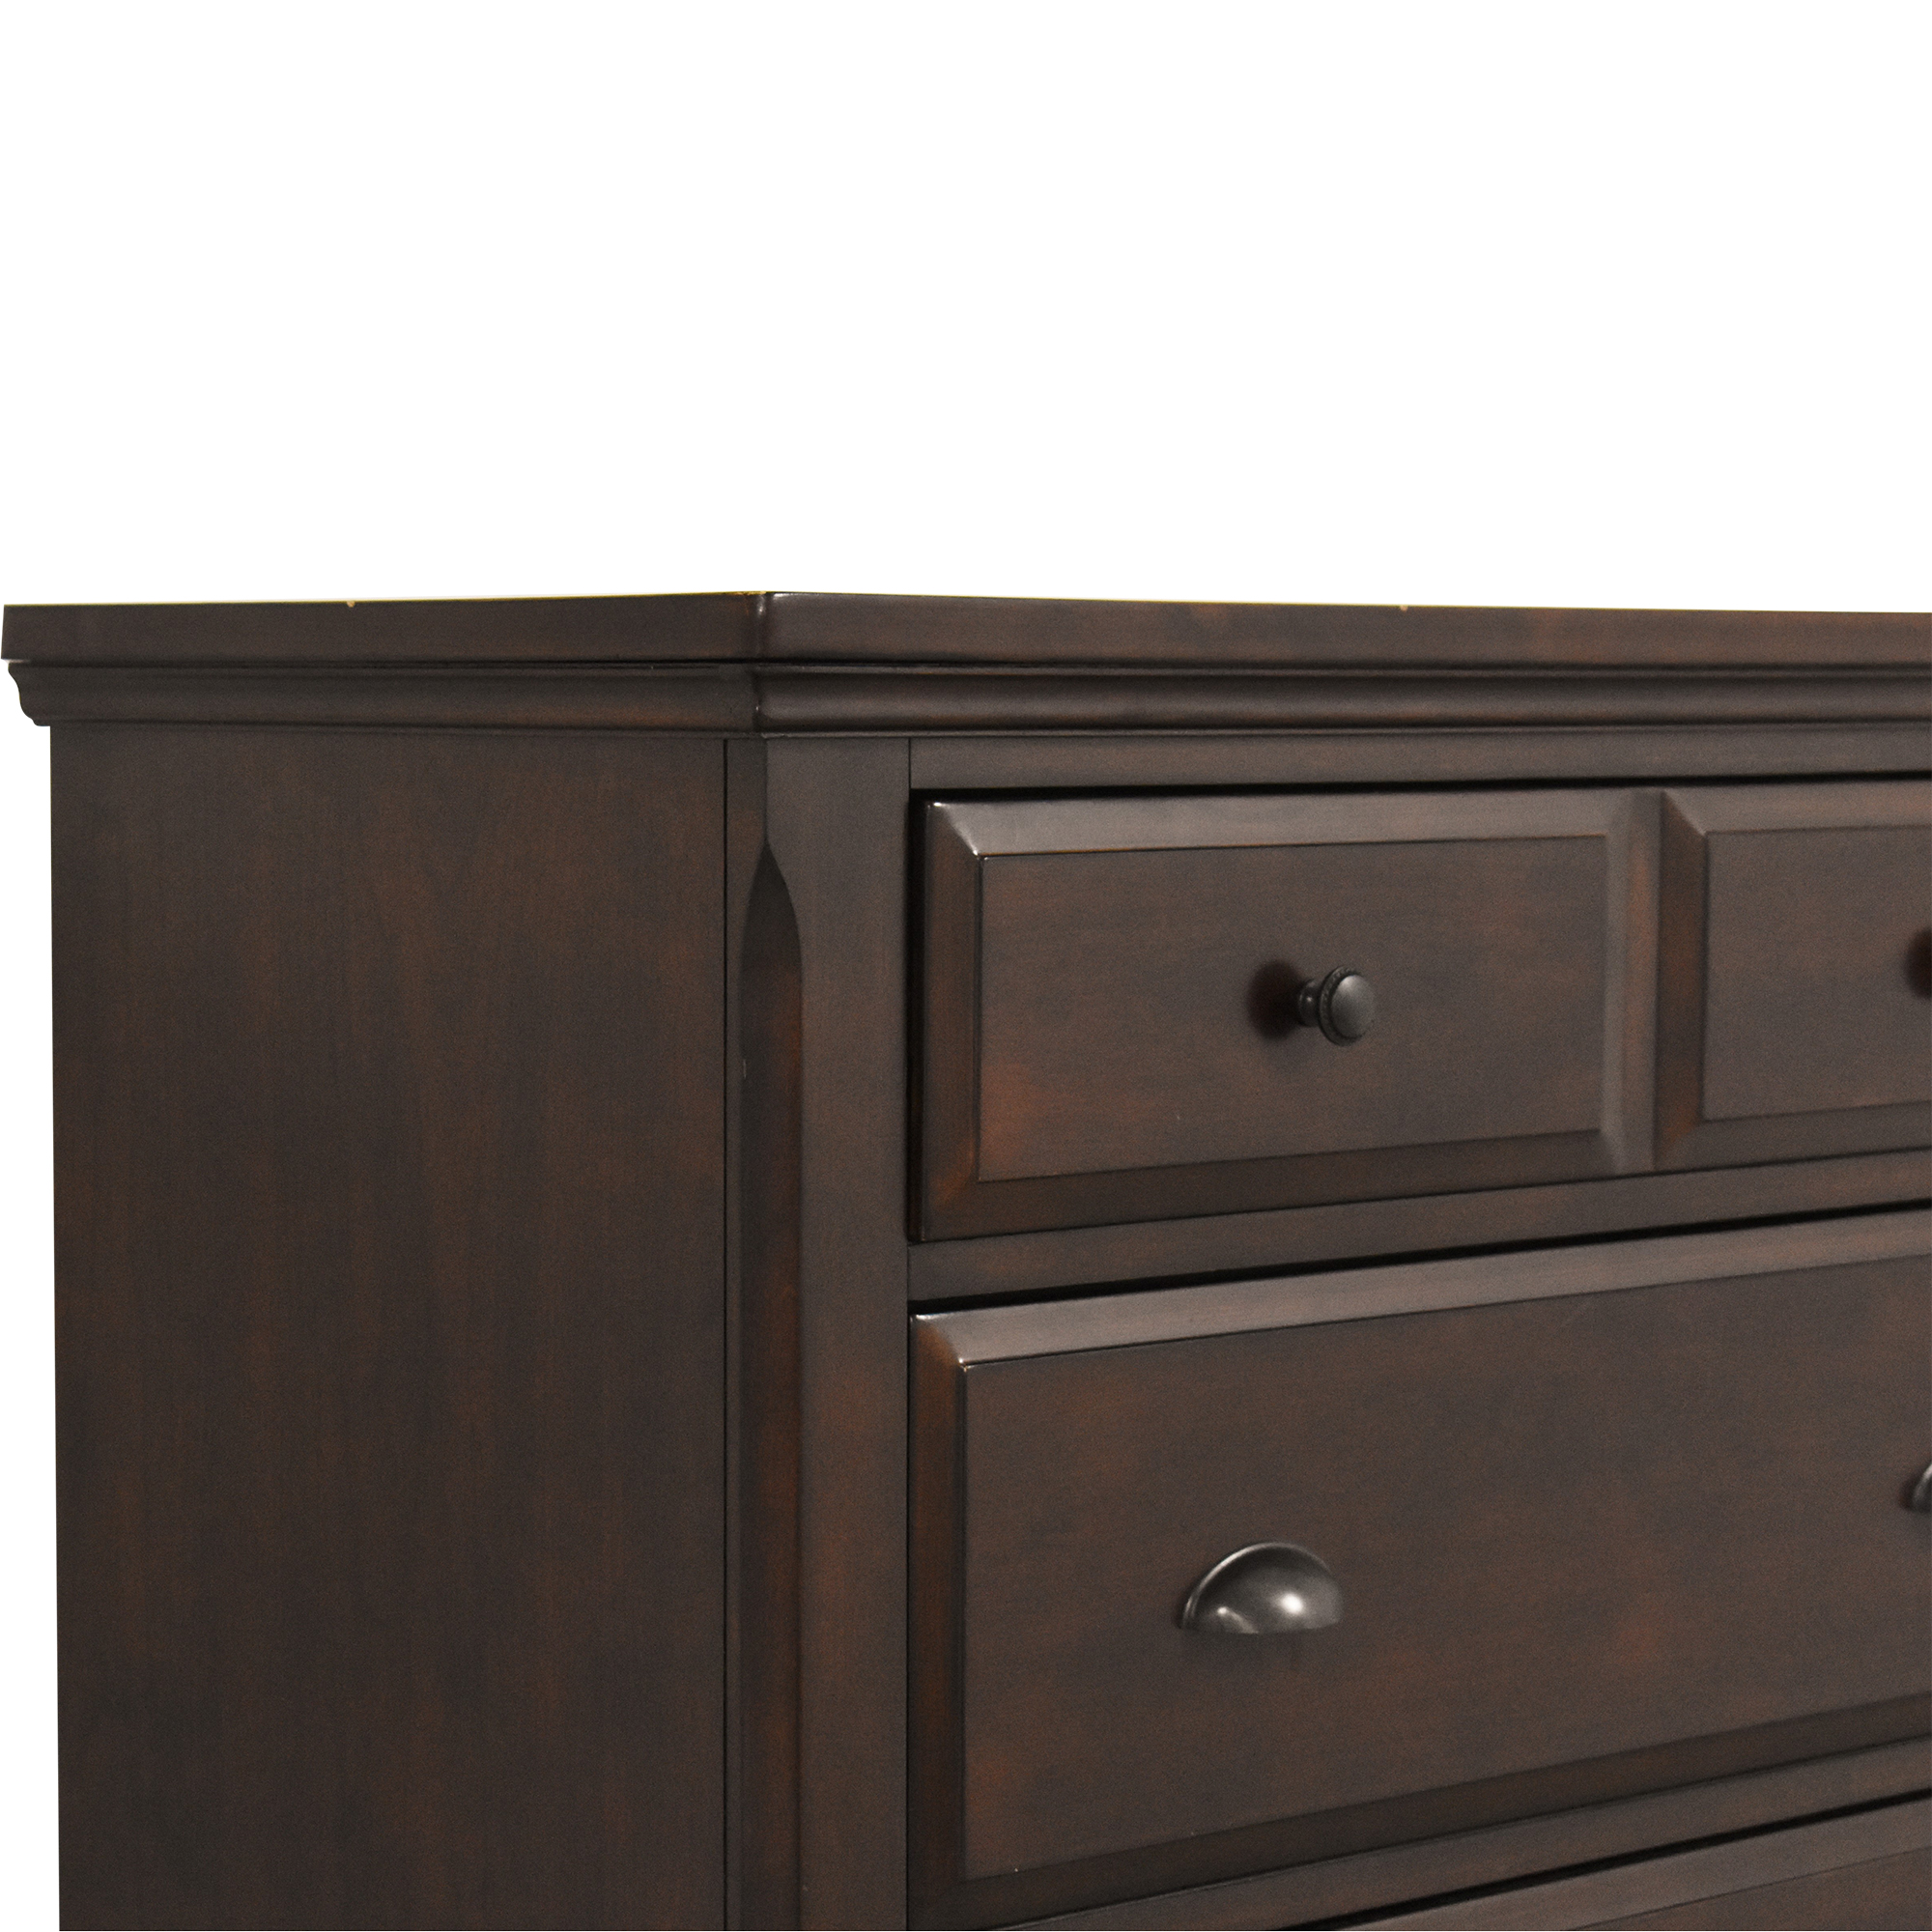 buy Gallery Five Drawer Chest Gallery Dressers